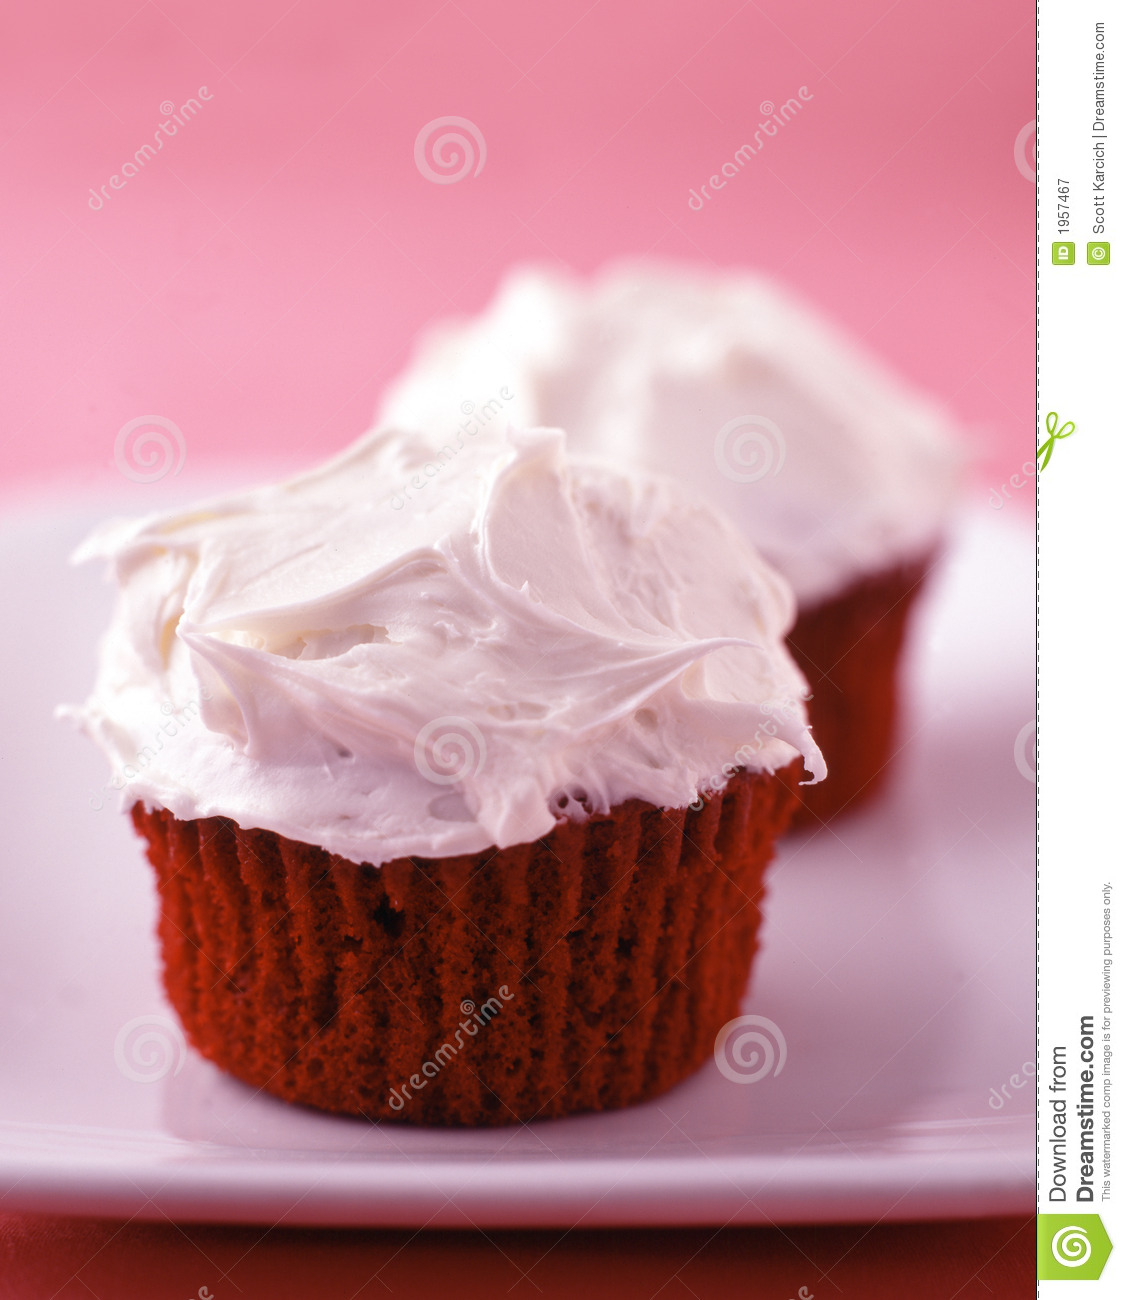 Red Velvet Cupcakes With Vanilla Frosting Royalty Free Stock ...